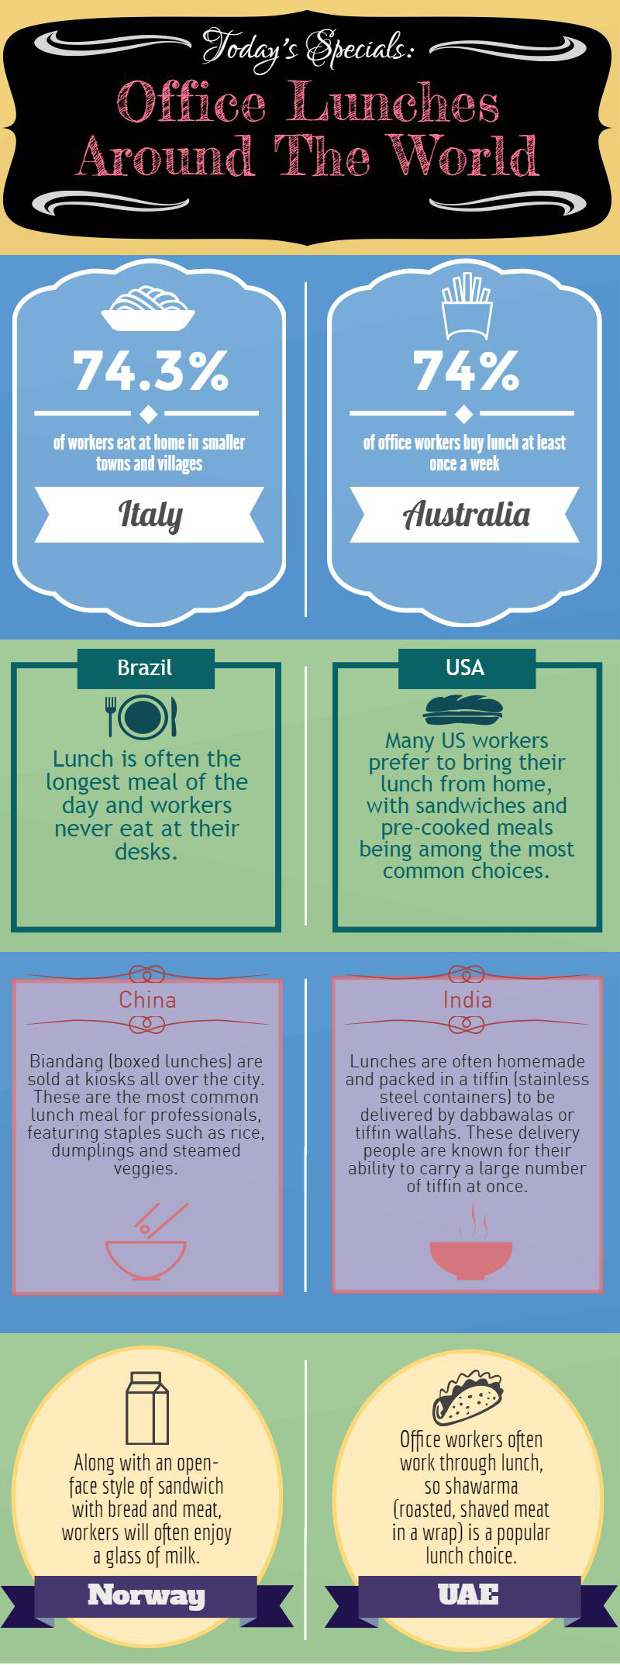 An infographic showing different facts and figures to do with typical lunch habits of people around the world